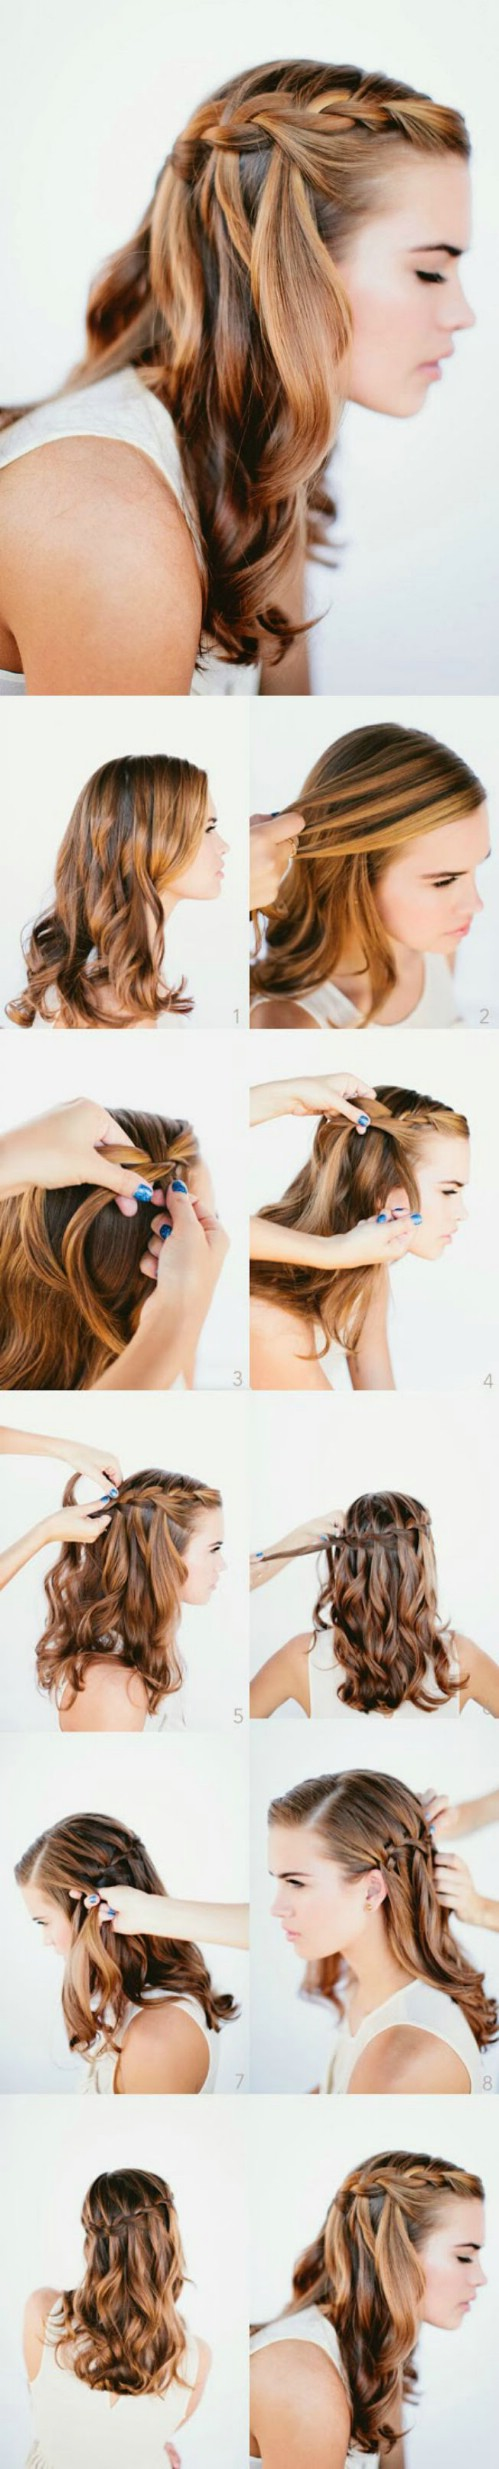 Waterfall Braid Long Hairstyle Tutorial.